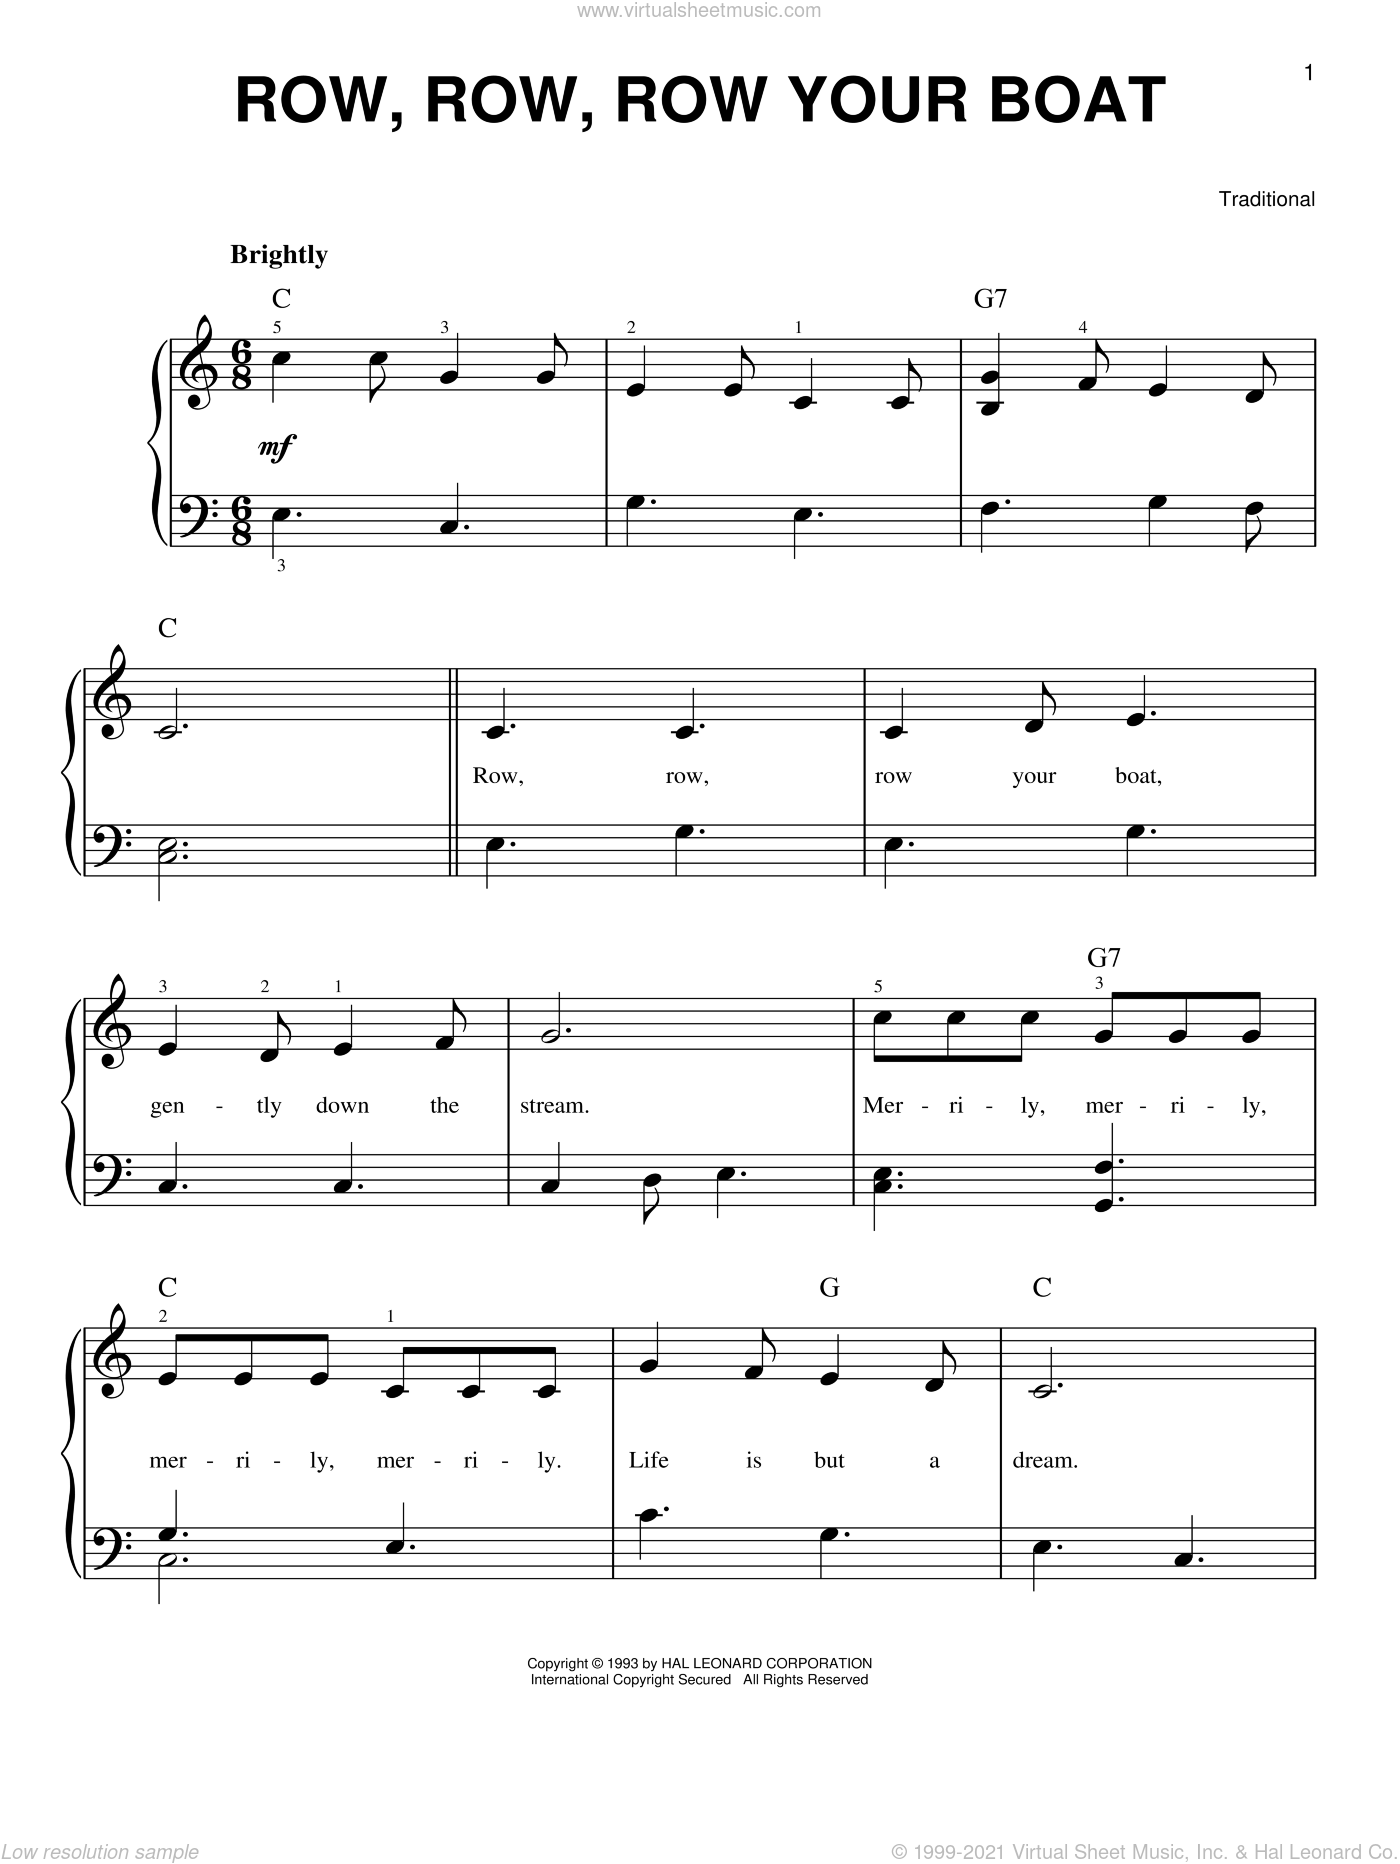 Row, Row, Row Your Boat sheet music for piano solo, easy